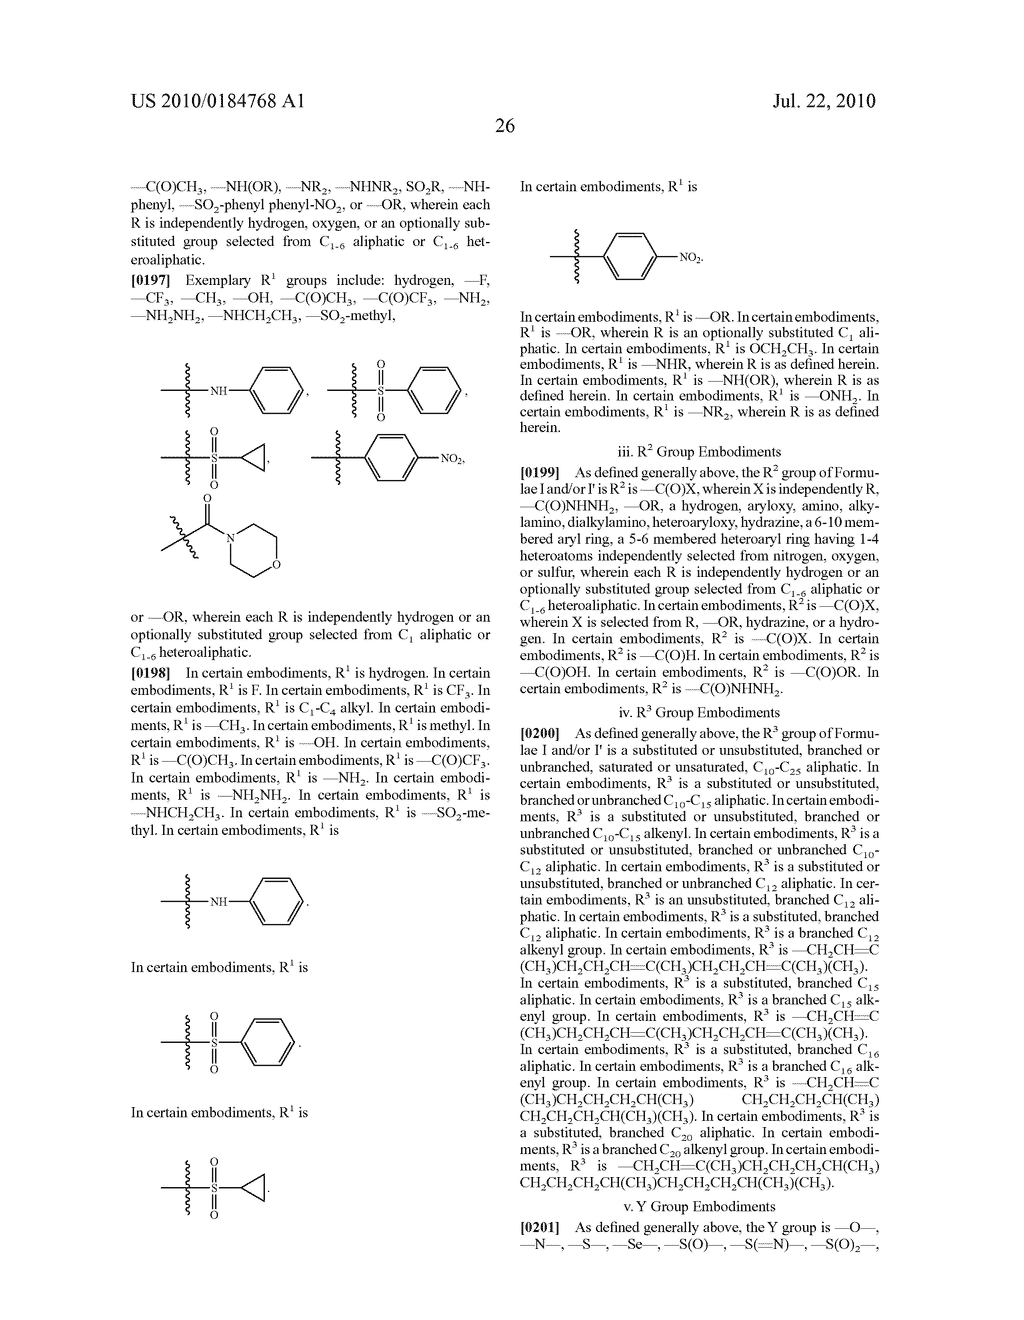 Isoprenyl Compounds and Methods Thereof - diagram, schematic, and image 41